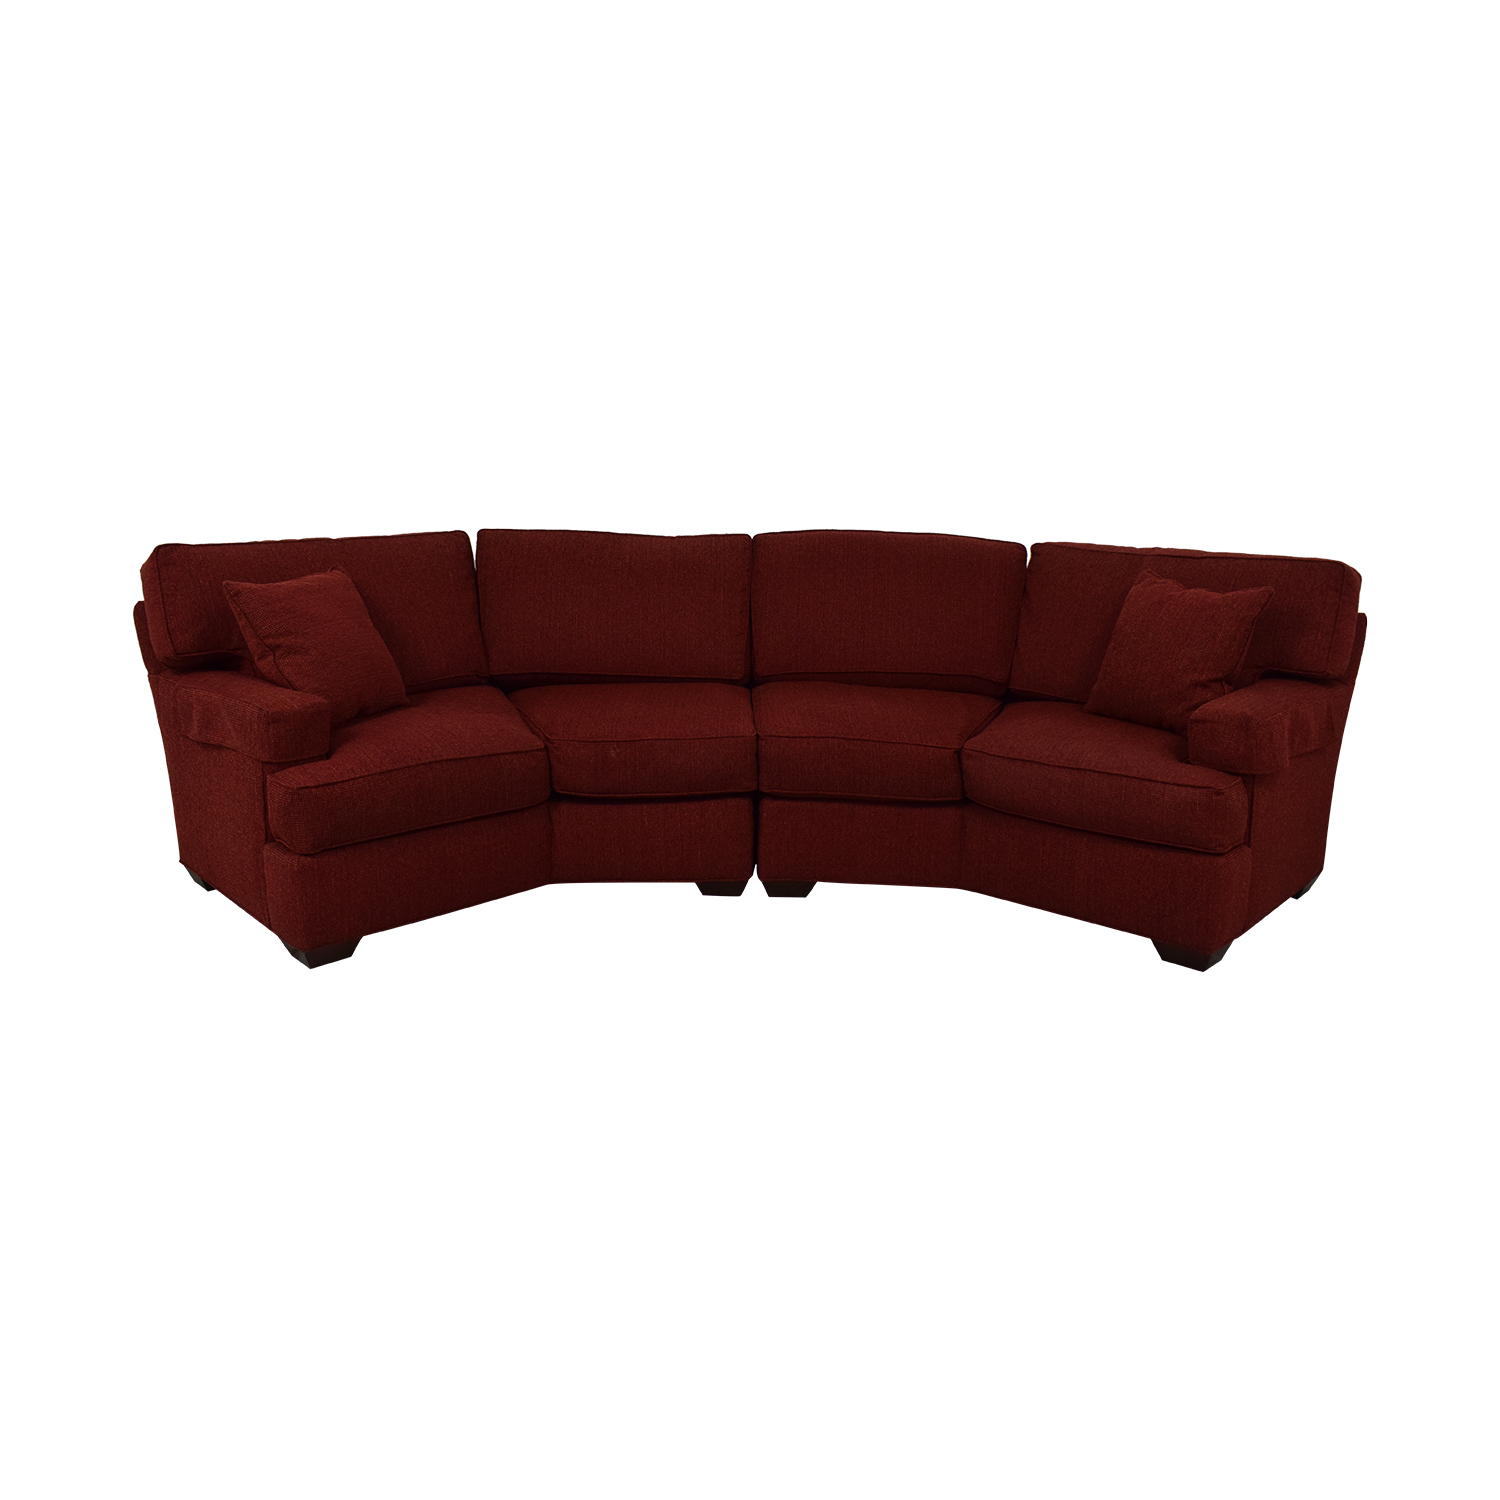 Pearson Pearson Red Wedge Sectional Sofa price